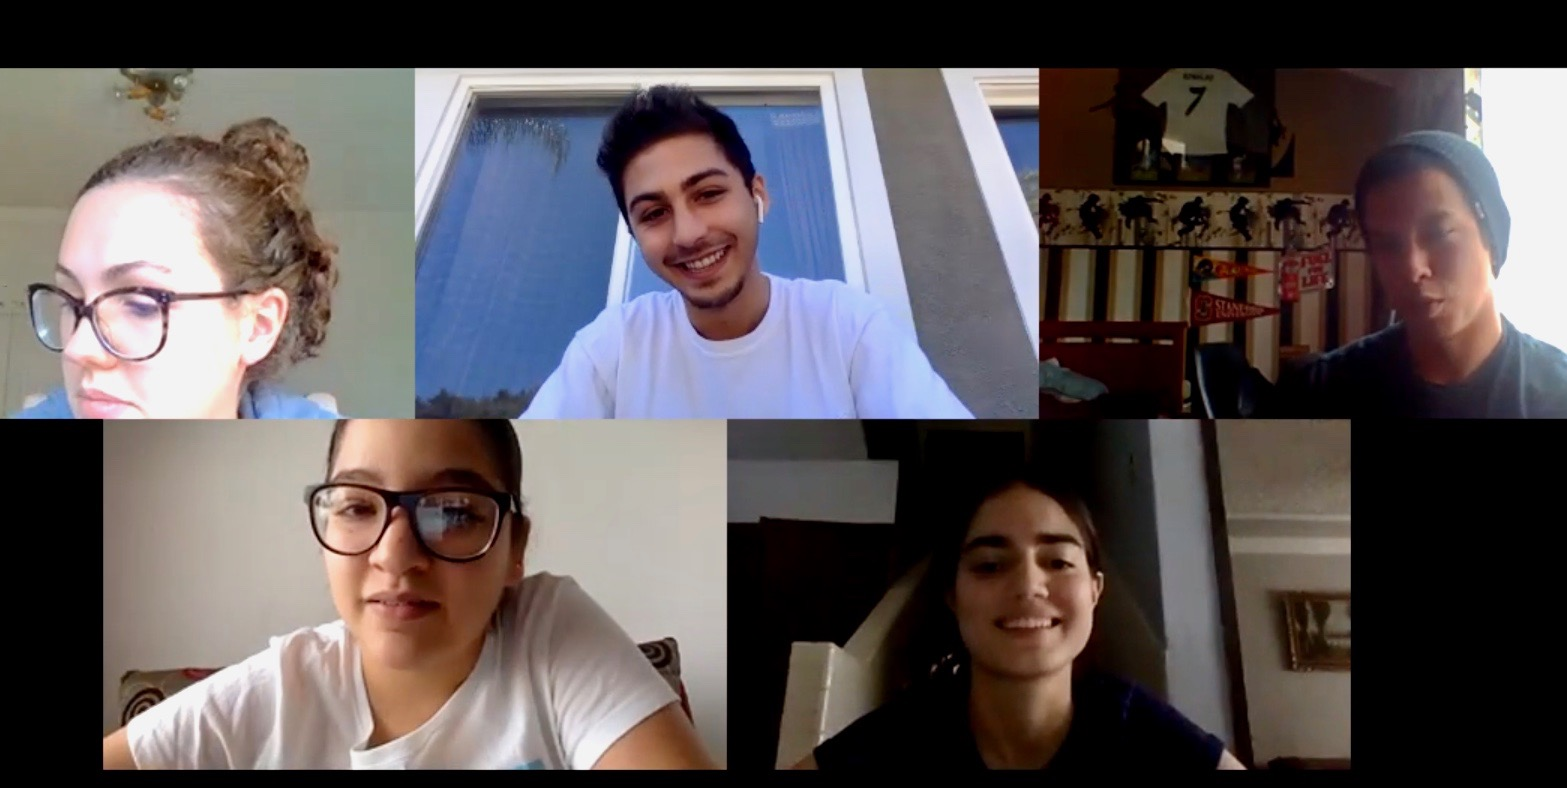 Students from the University of San Diego and Tec de Monterrey meet on Zoom for a virtual class project